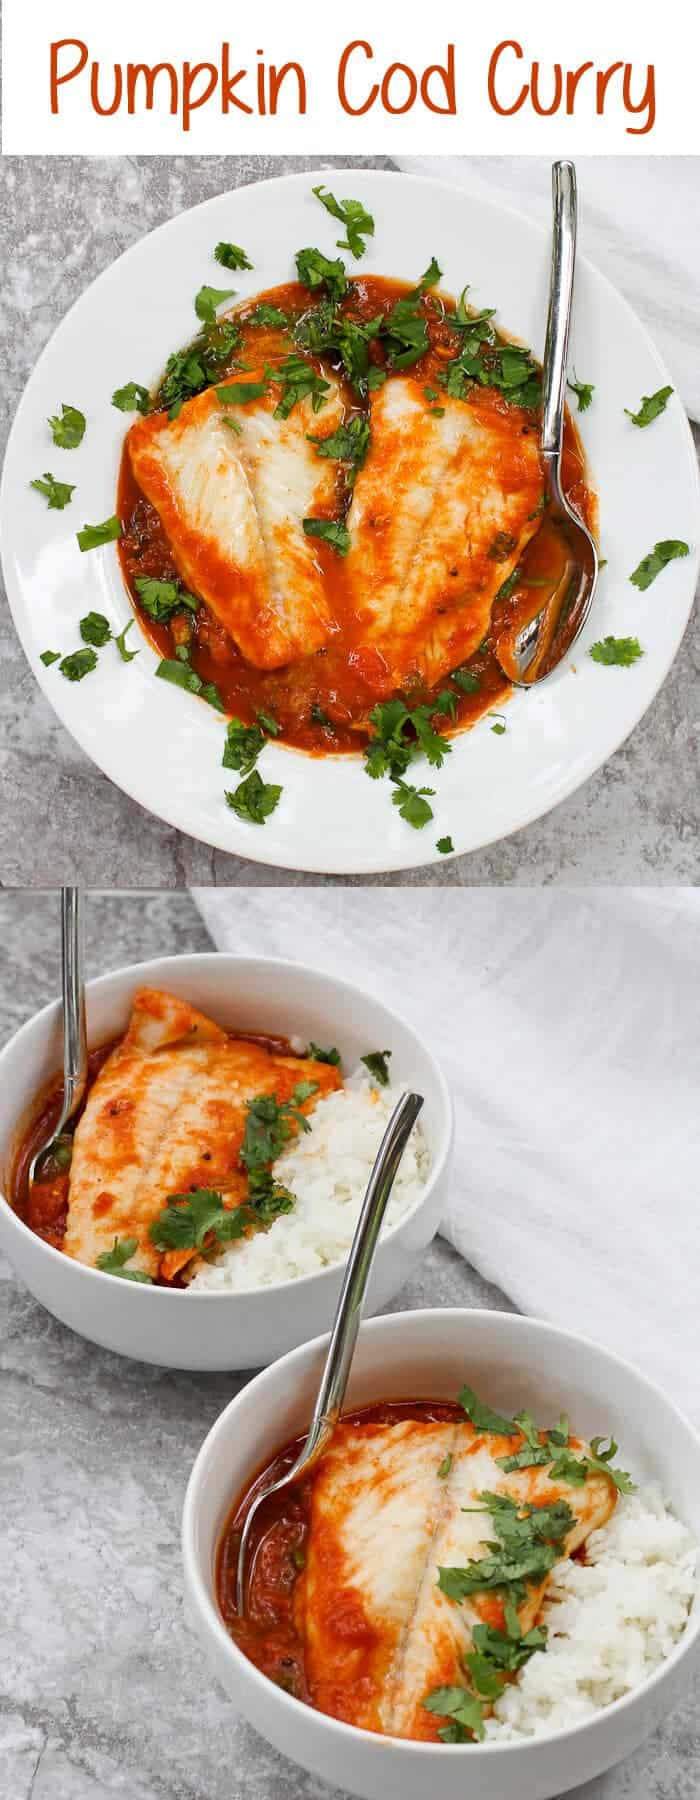 {ad} This easy Cod Curry with Pumpkin is made with a spiced pumpkin-tomato sauce, fresh spinach, and gently poached cod.